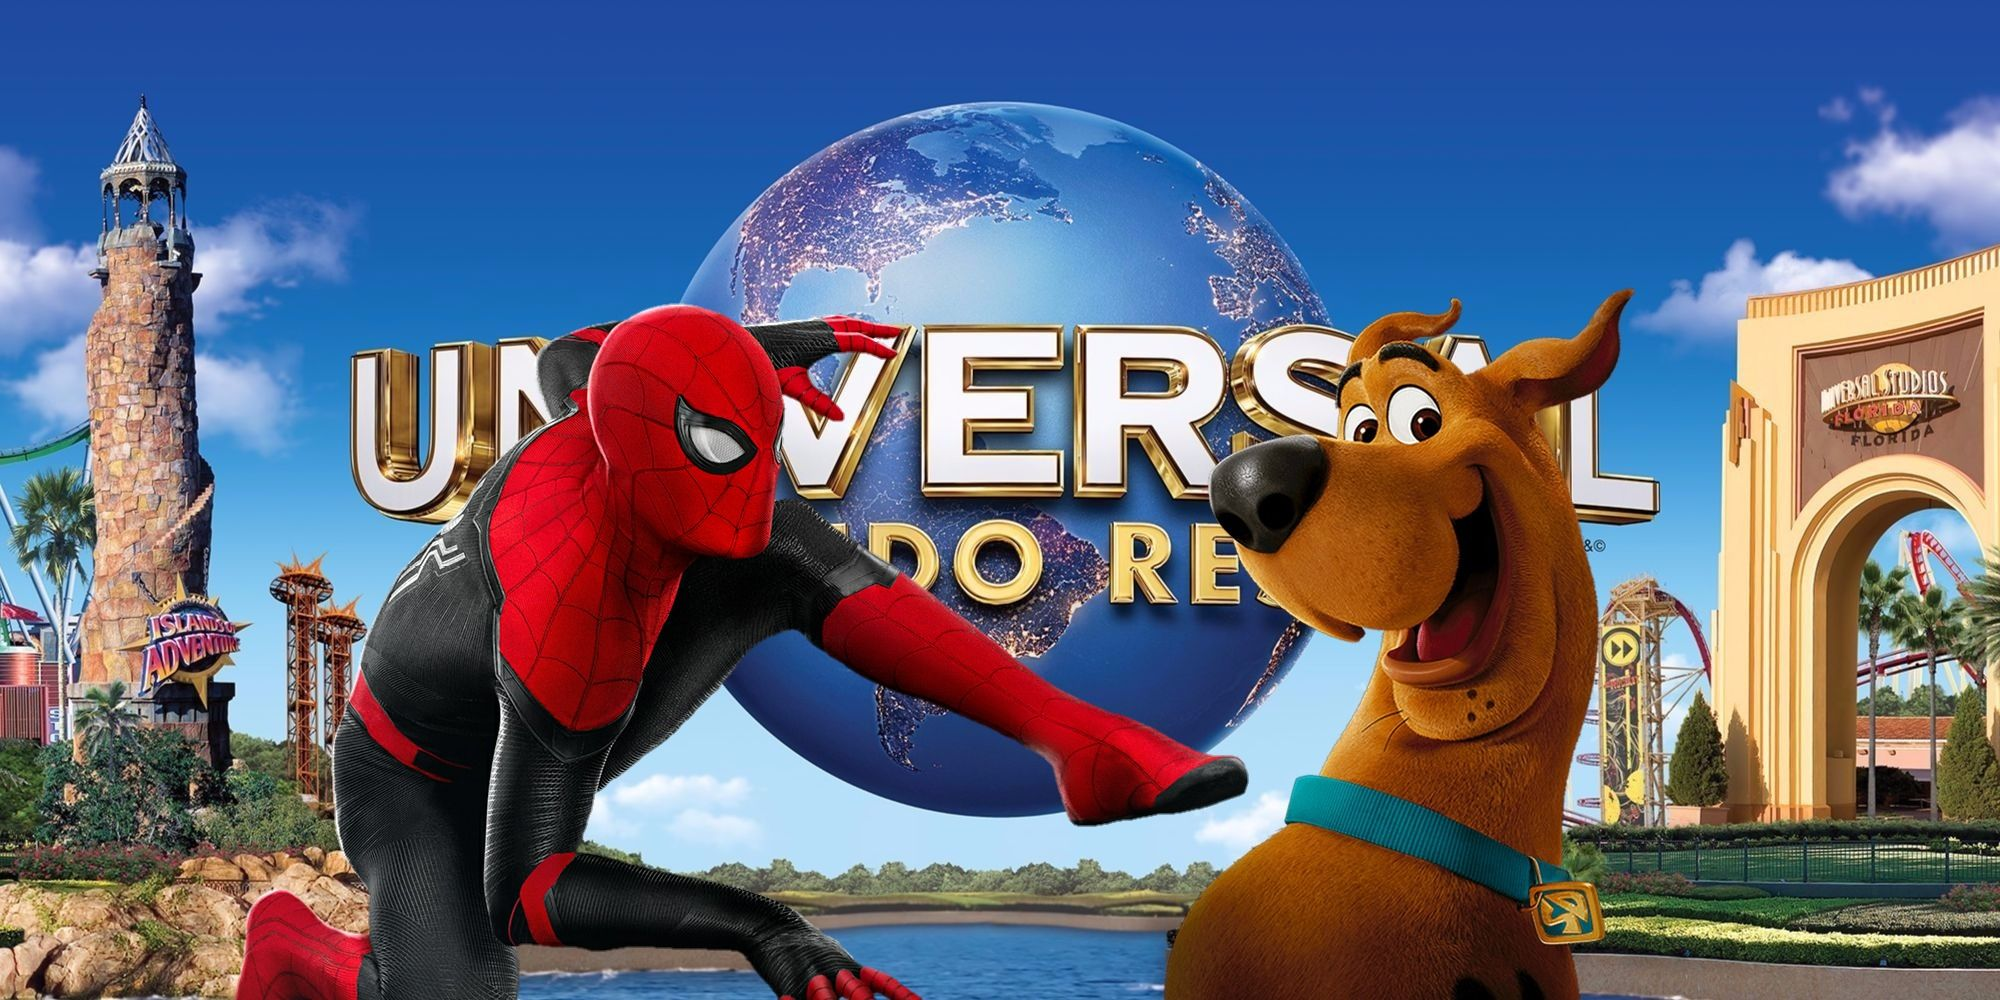 Marvel & Scooby Doo Characters Wear Masks In Universal Orlando Photos